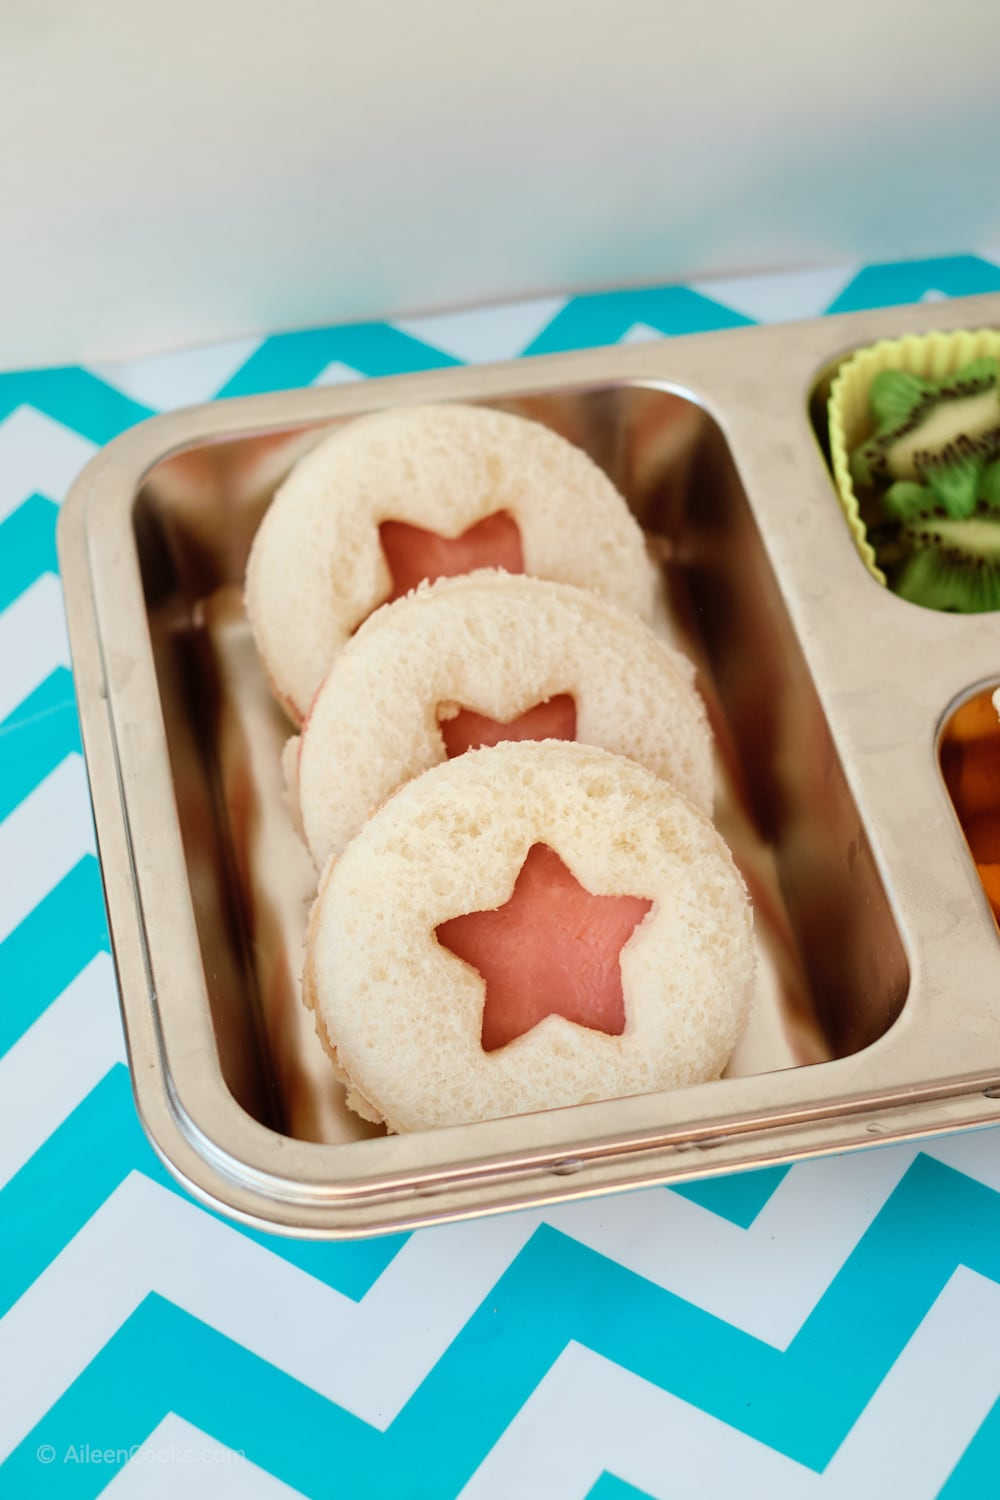 Three ham sandwiches cut into circles with star cut-outs in the center.